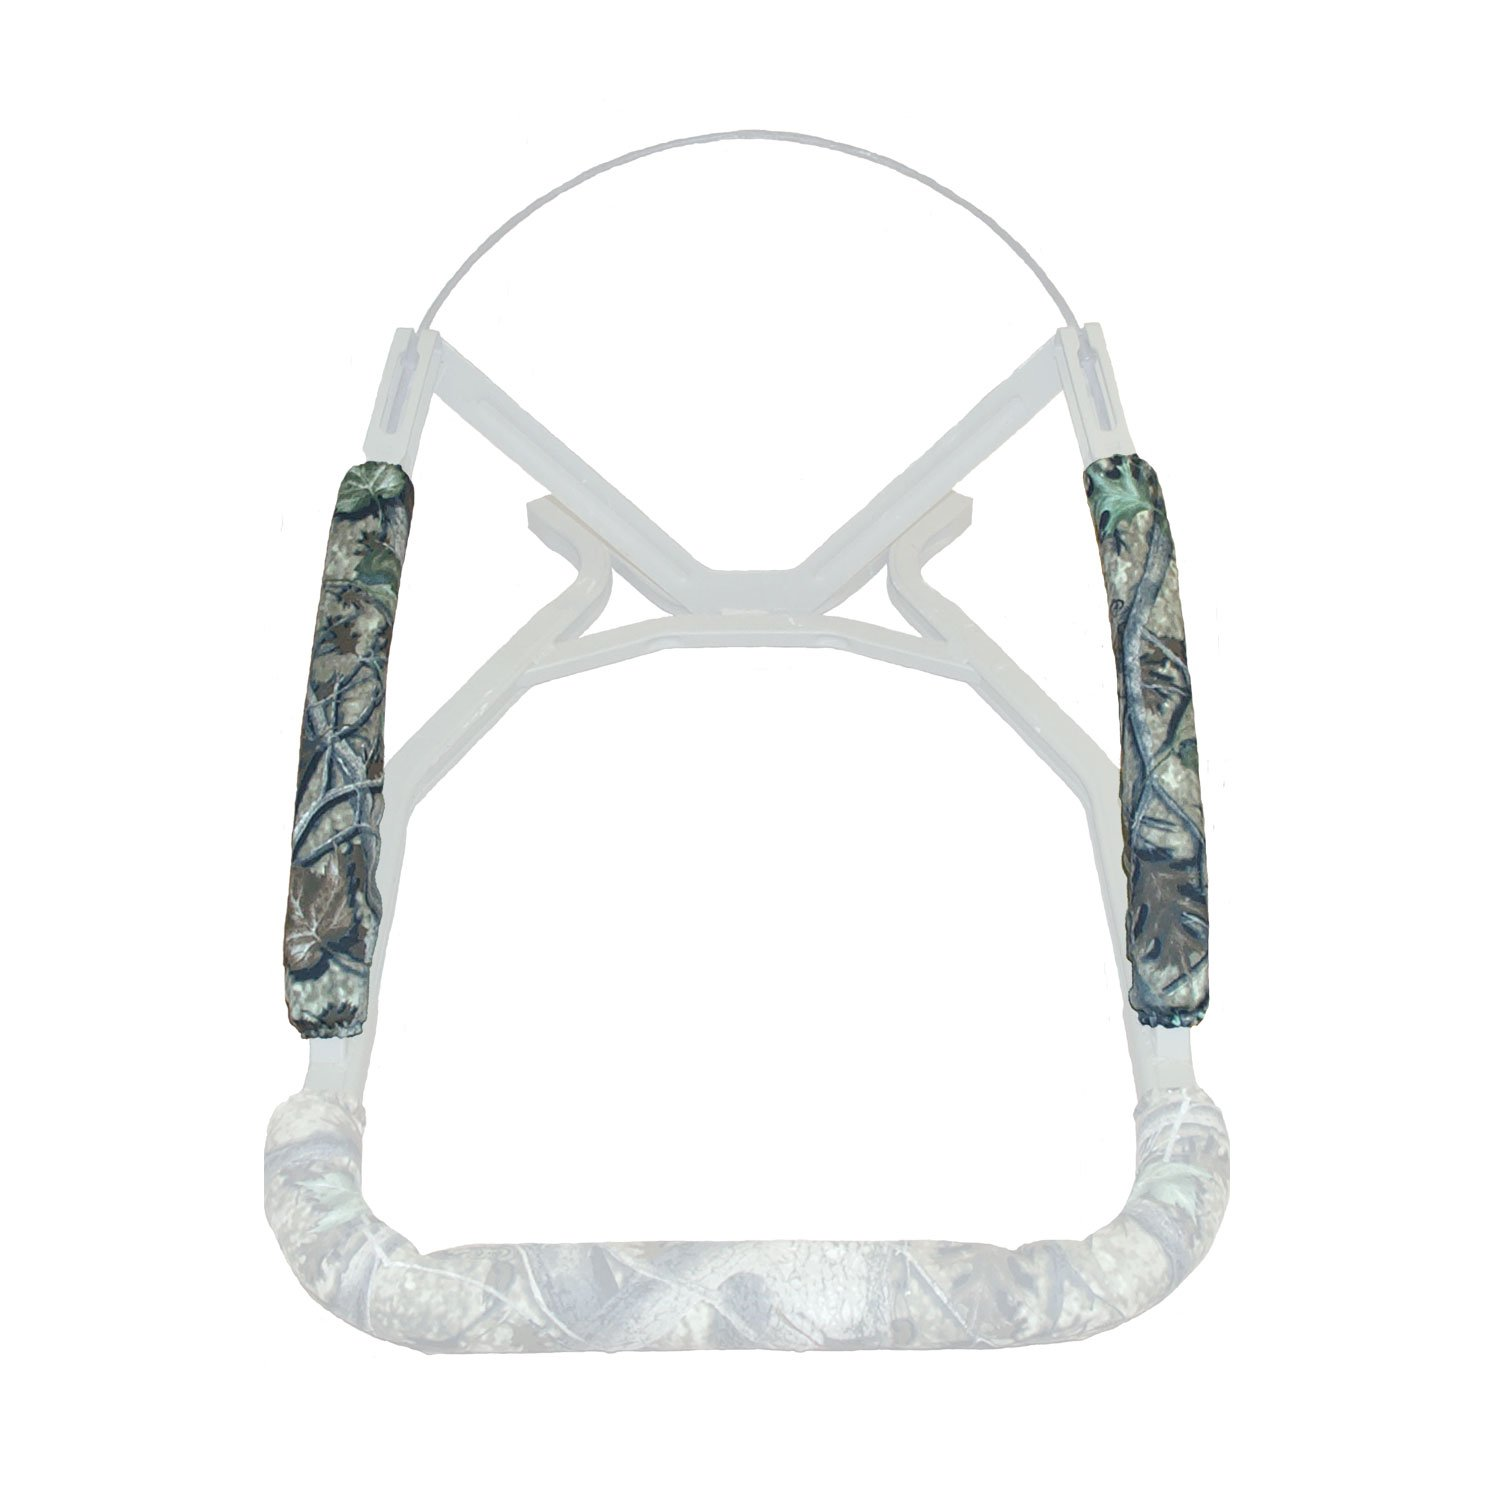 Treestand Resurrection, 15'' Arm Rail Pad Set (2), Clear Cutt Camo by COTTONWOOD OUTDOORS (Image #1)